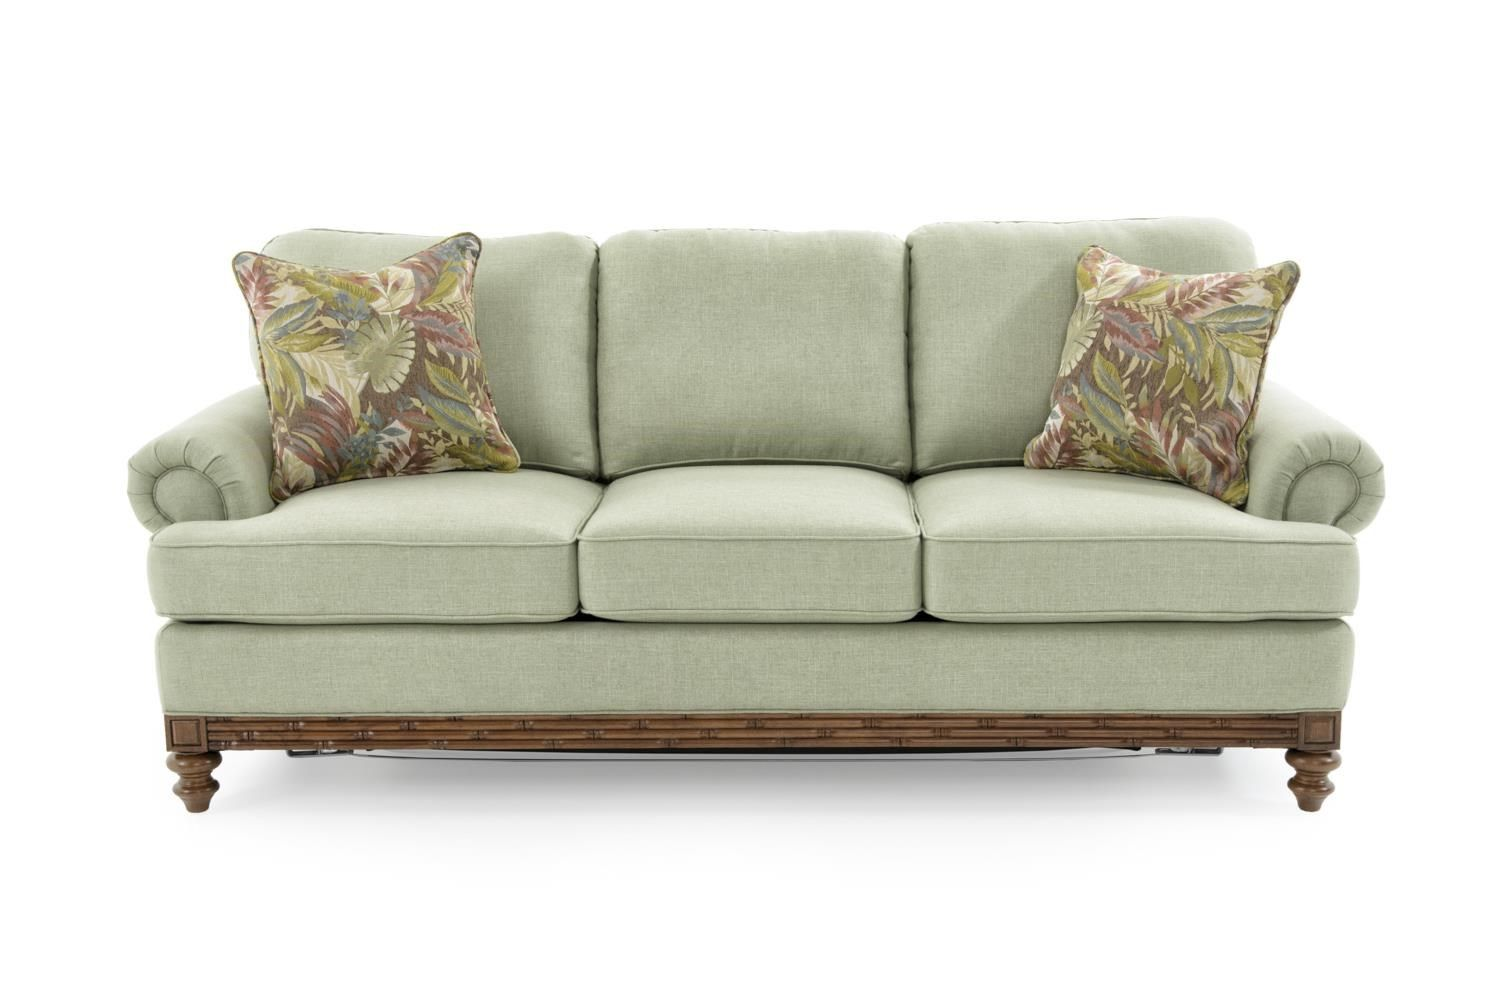 1526 Queen Sleeper Sofa by Synergy Home Furnishings at